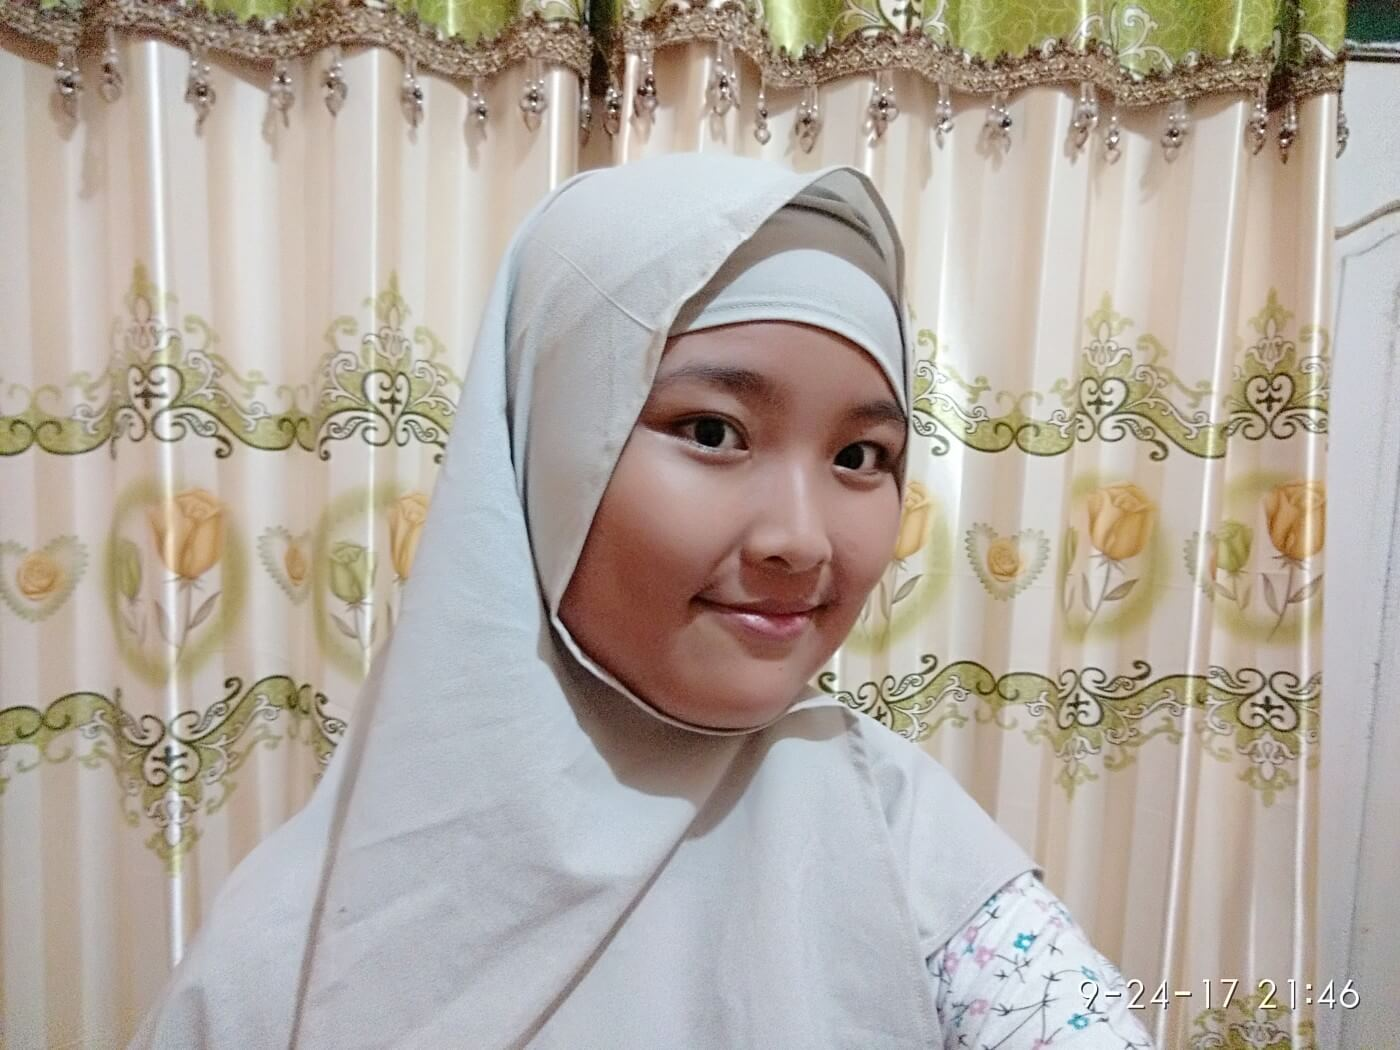 Dhanty using hijab aruna creatif